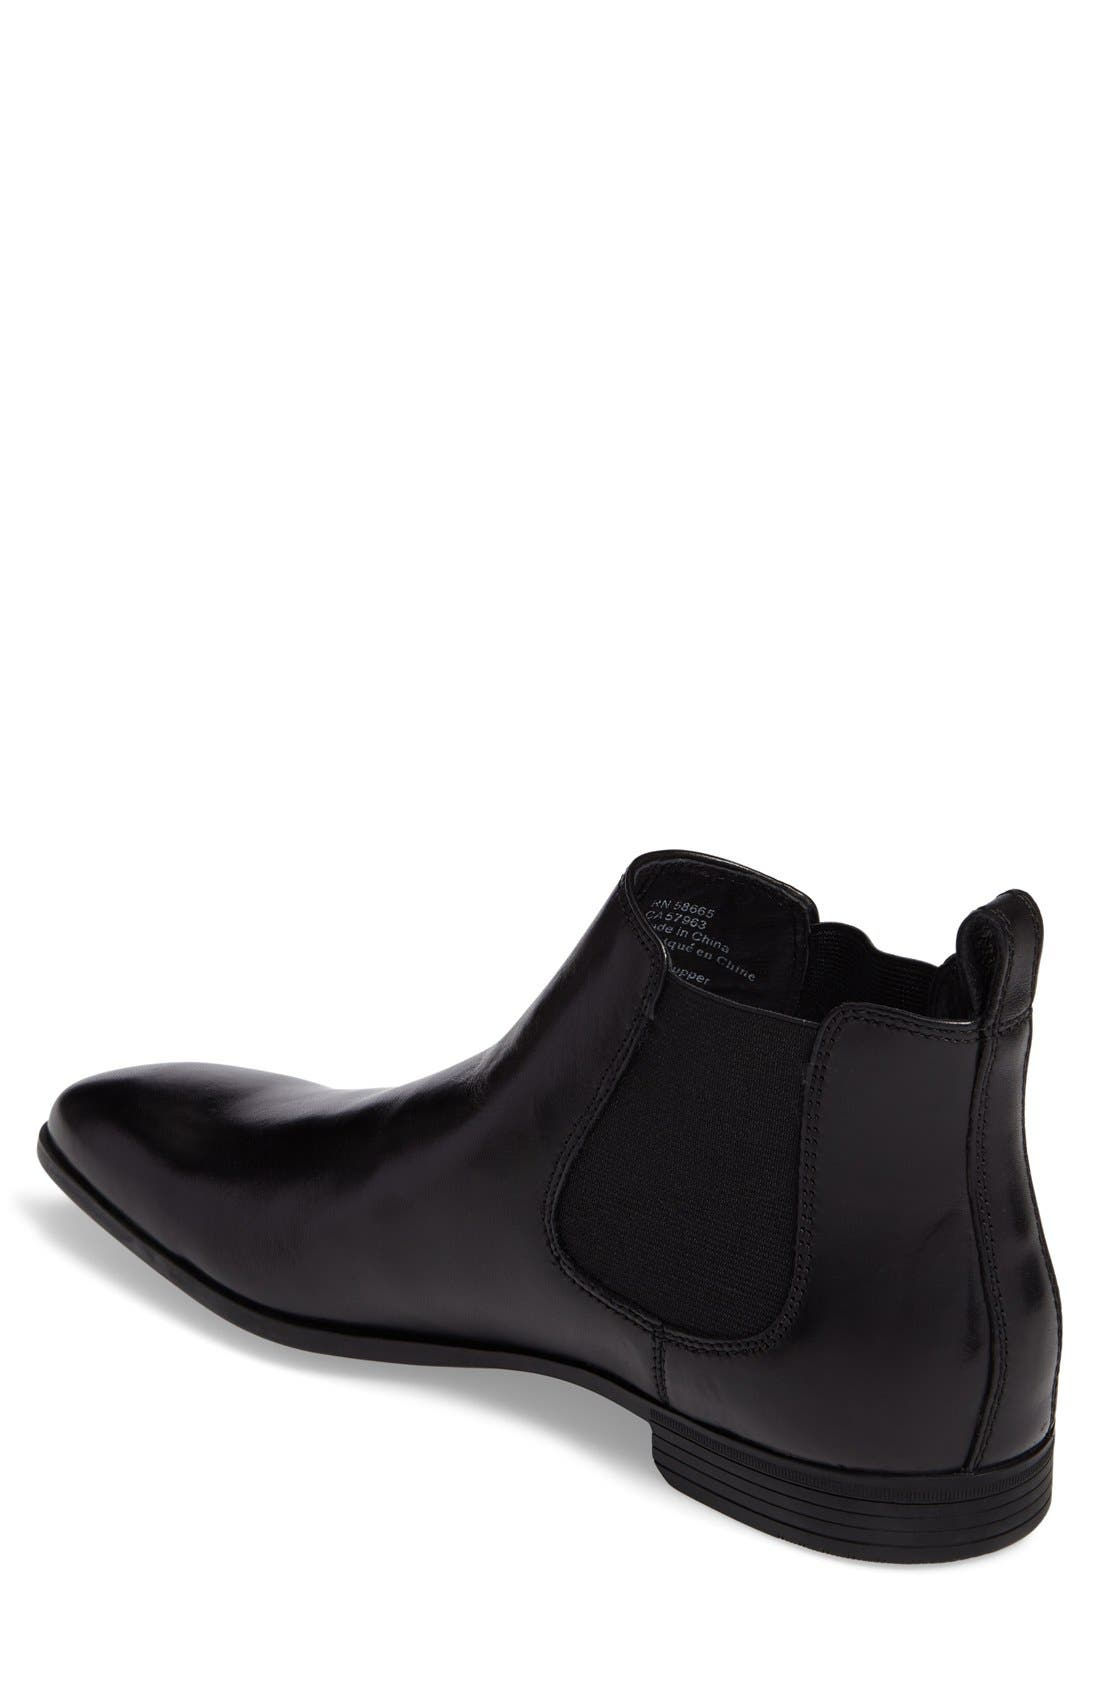 'Huntley' Chelsea Boot,                             Alternate thumbnail 2, color,                             Black Leather